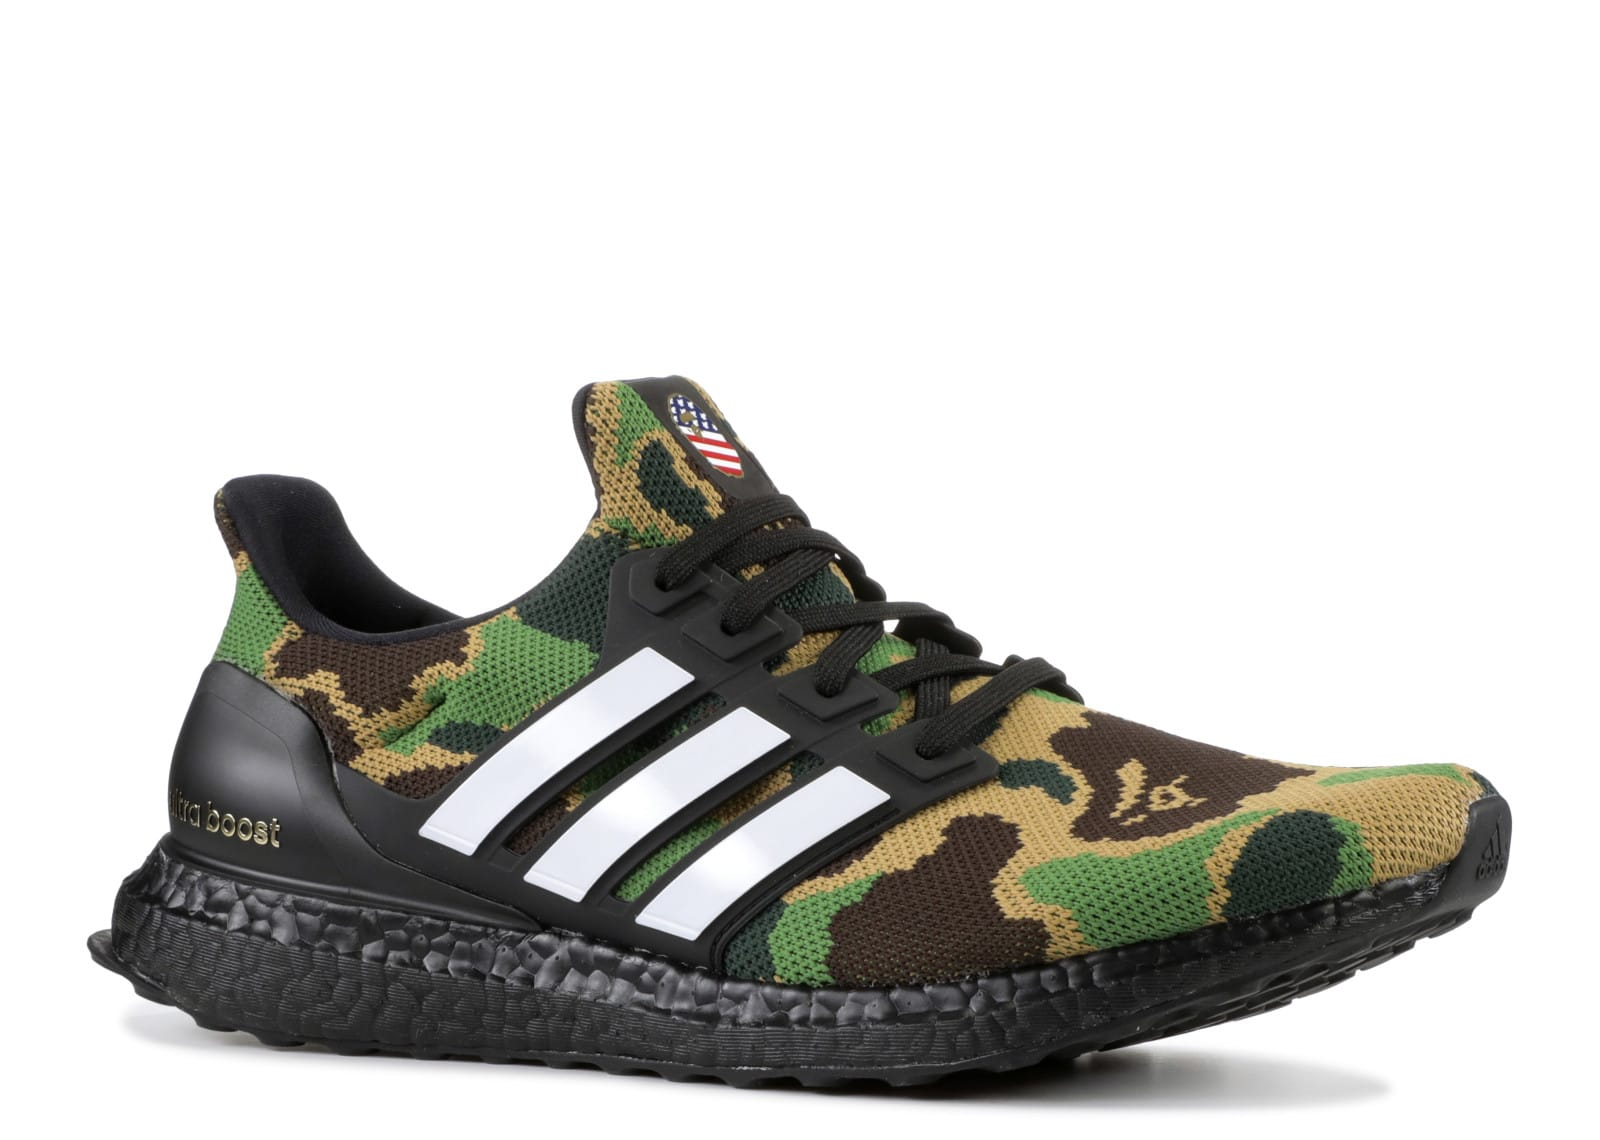 aca464b34 ... Adidas Ultra Boost 4.0 Bape Camo Green. Filter. Previous